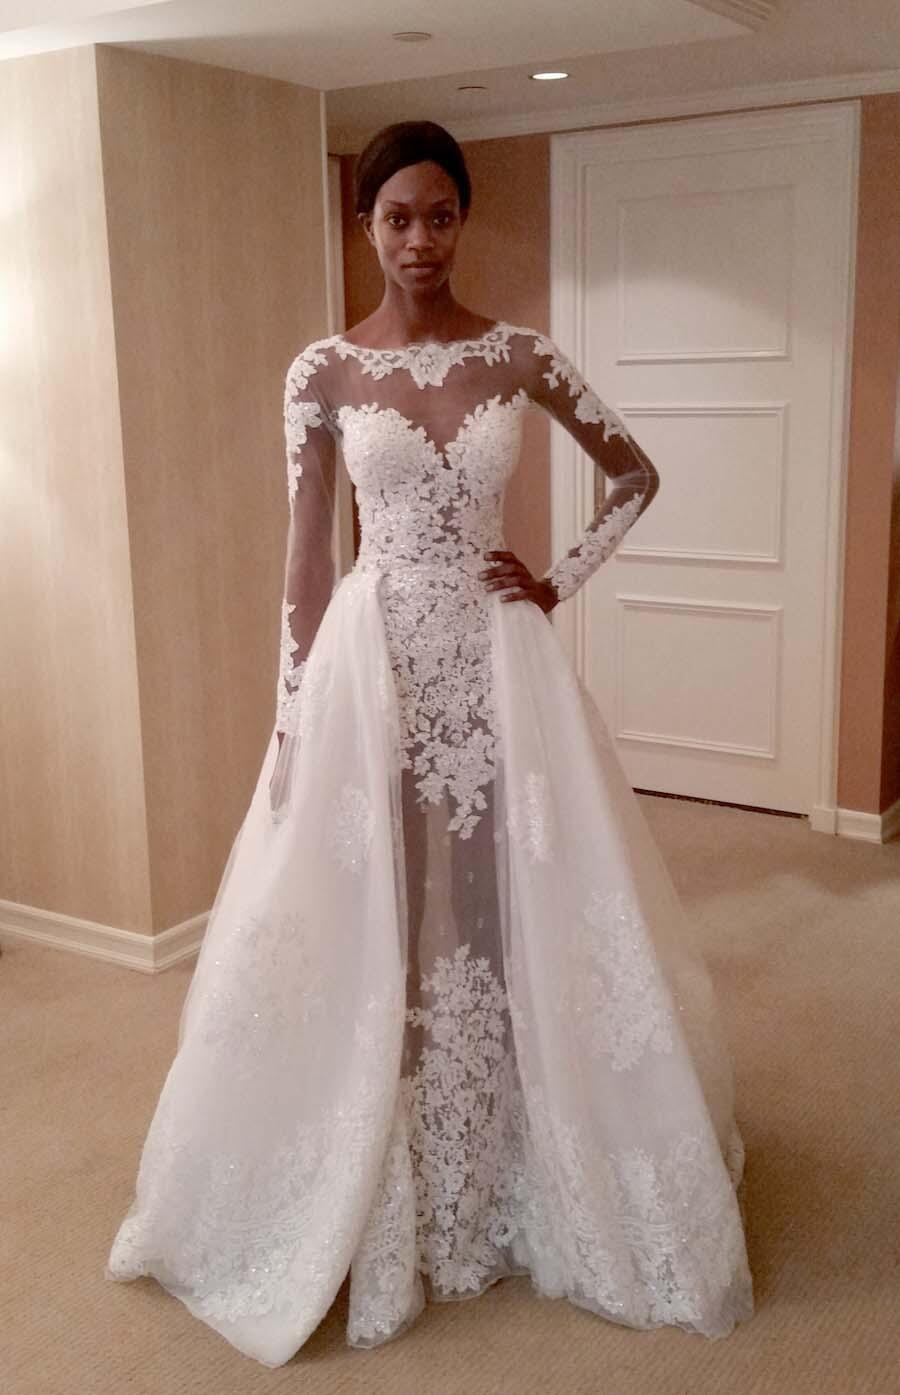 Wedding Dresses with Sheer Illusion Sleeves - Dress images